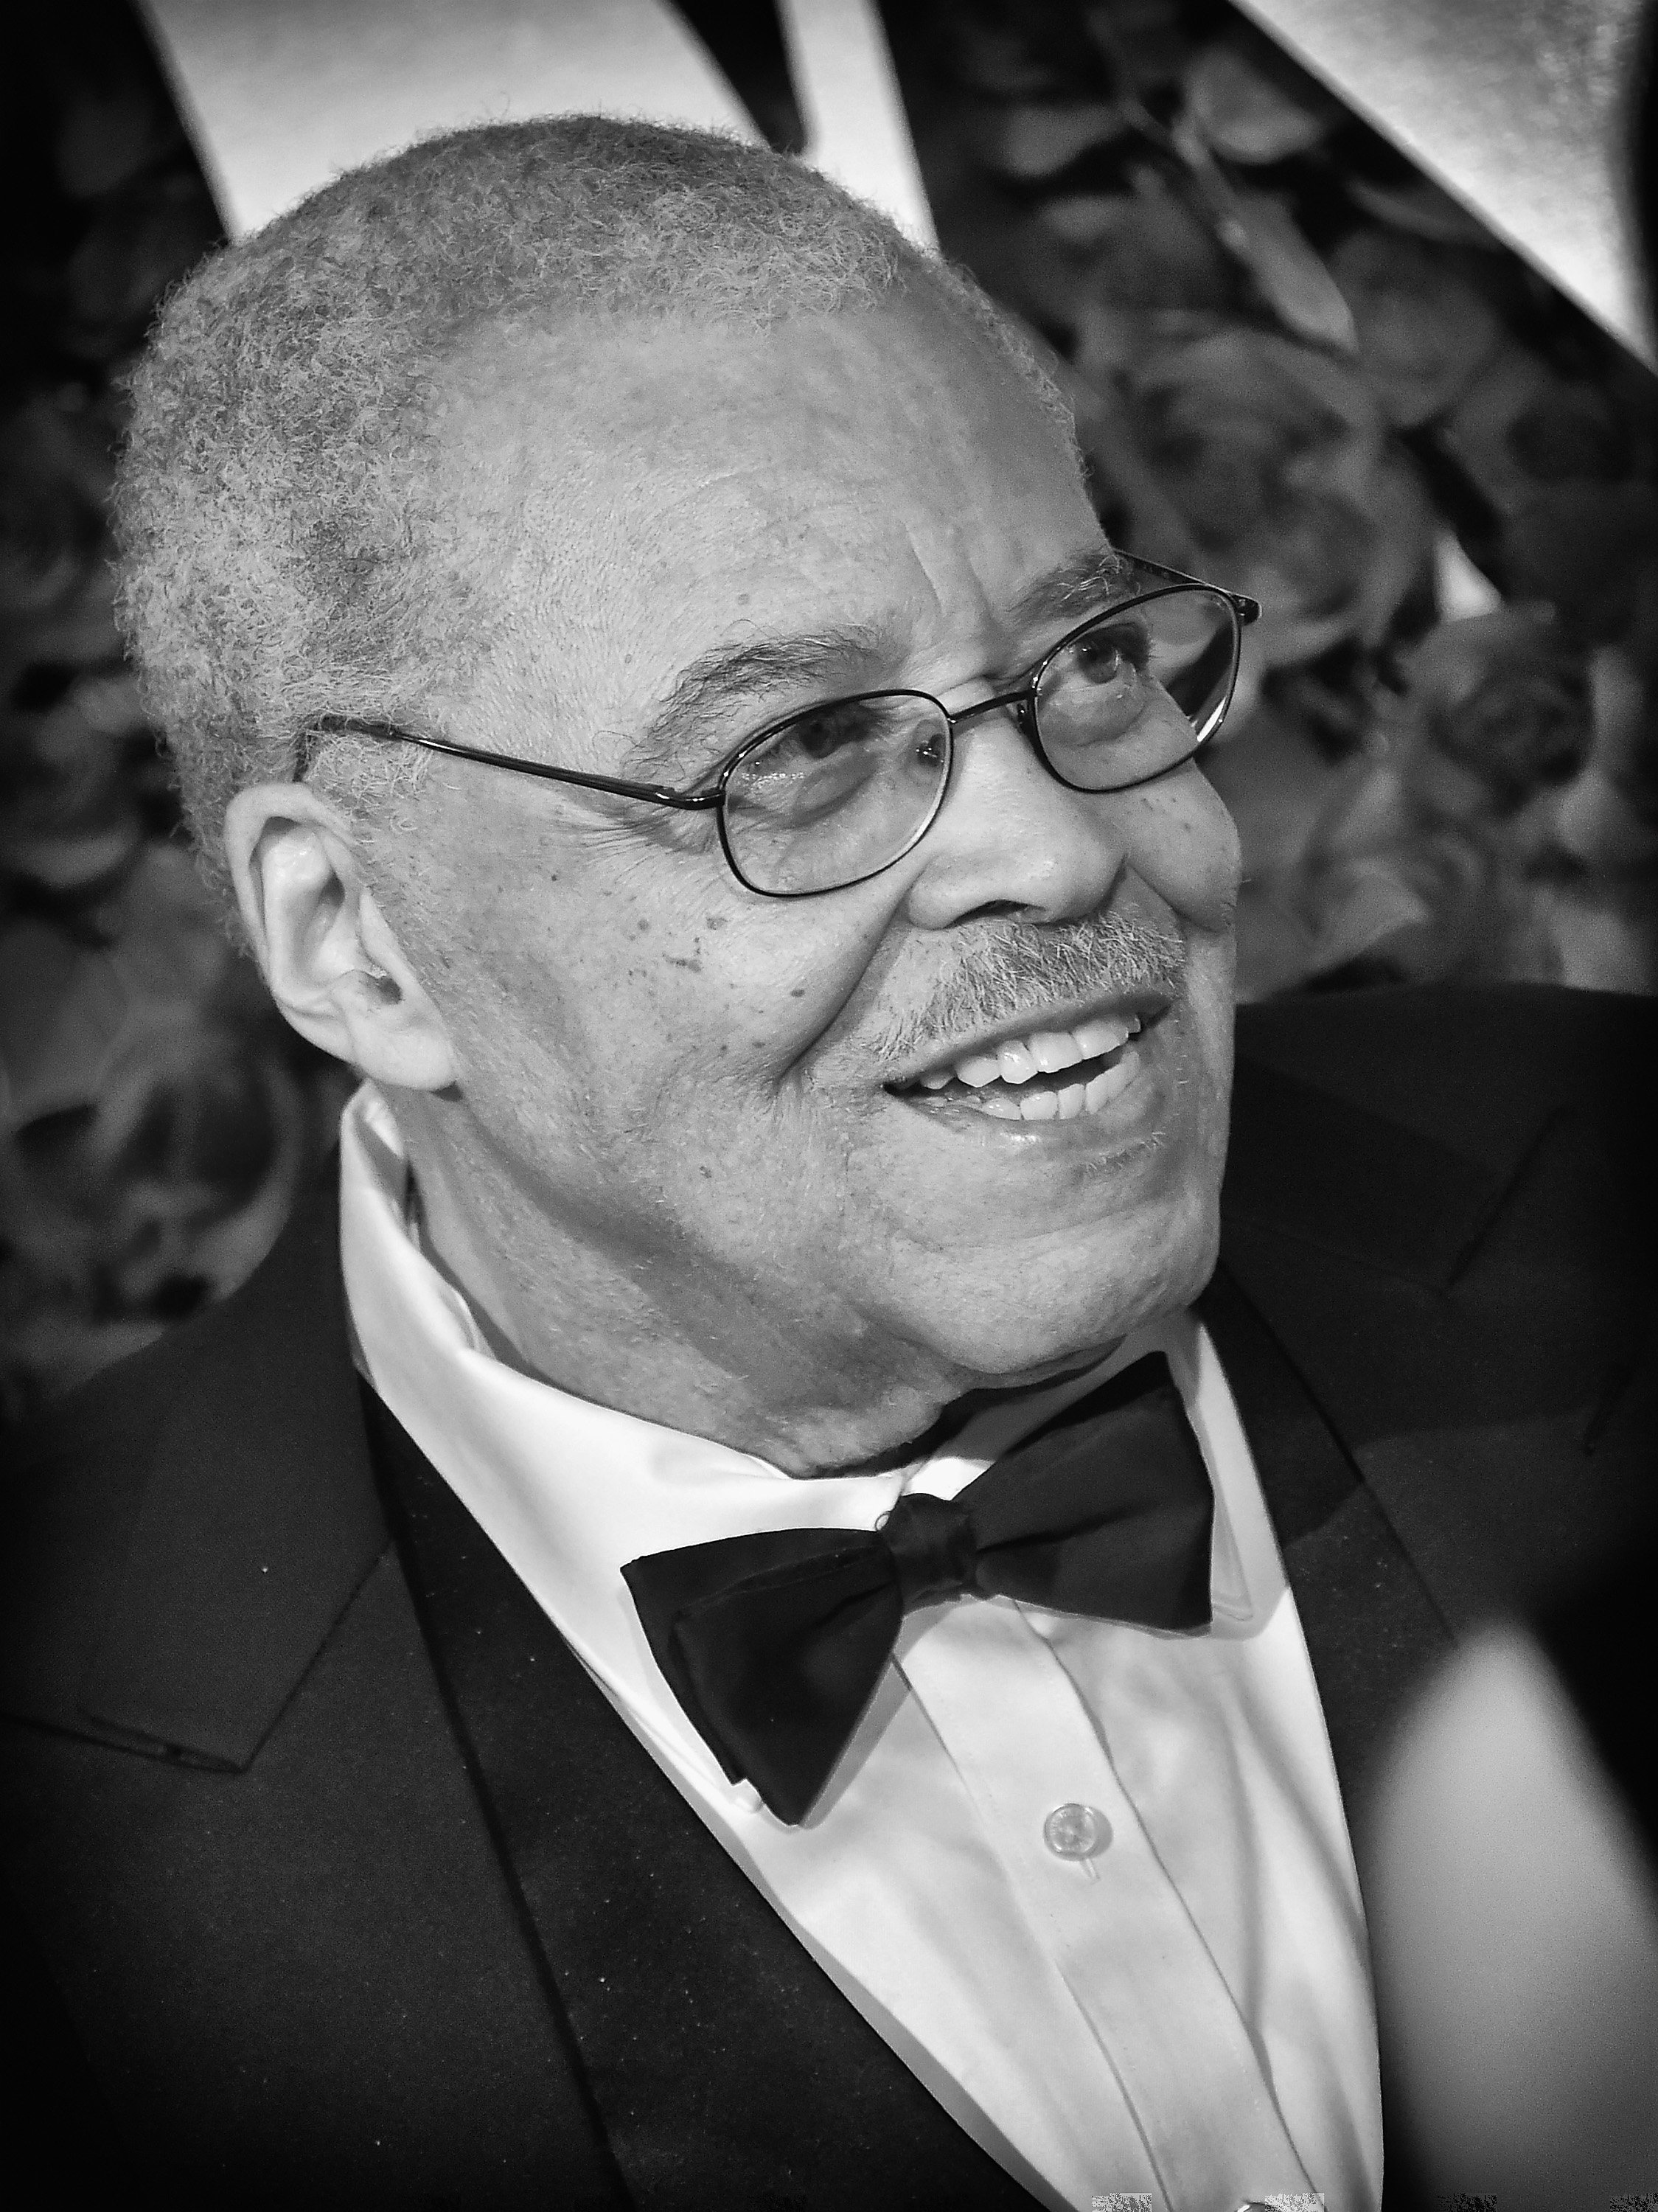 James Earl Jones at the 2016 Tony Awards in New York City on June 12, 2016.   Photo: Getty Images